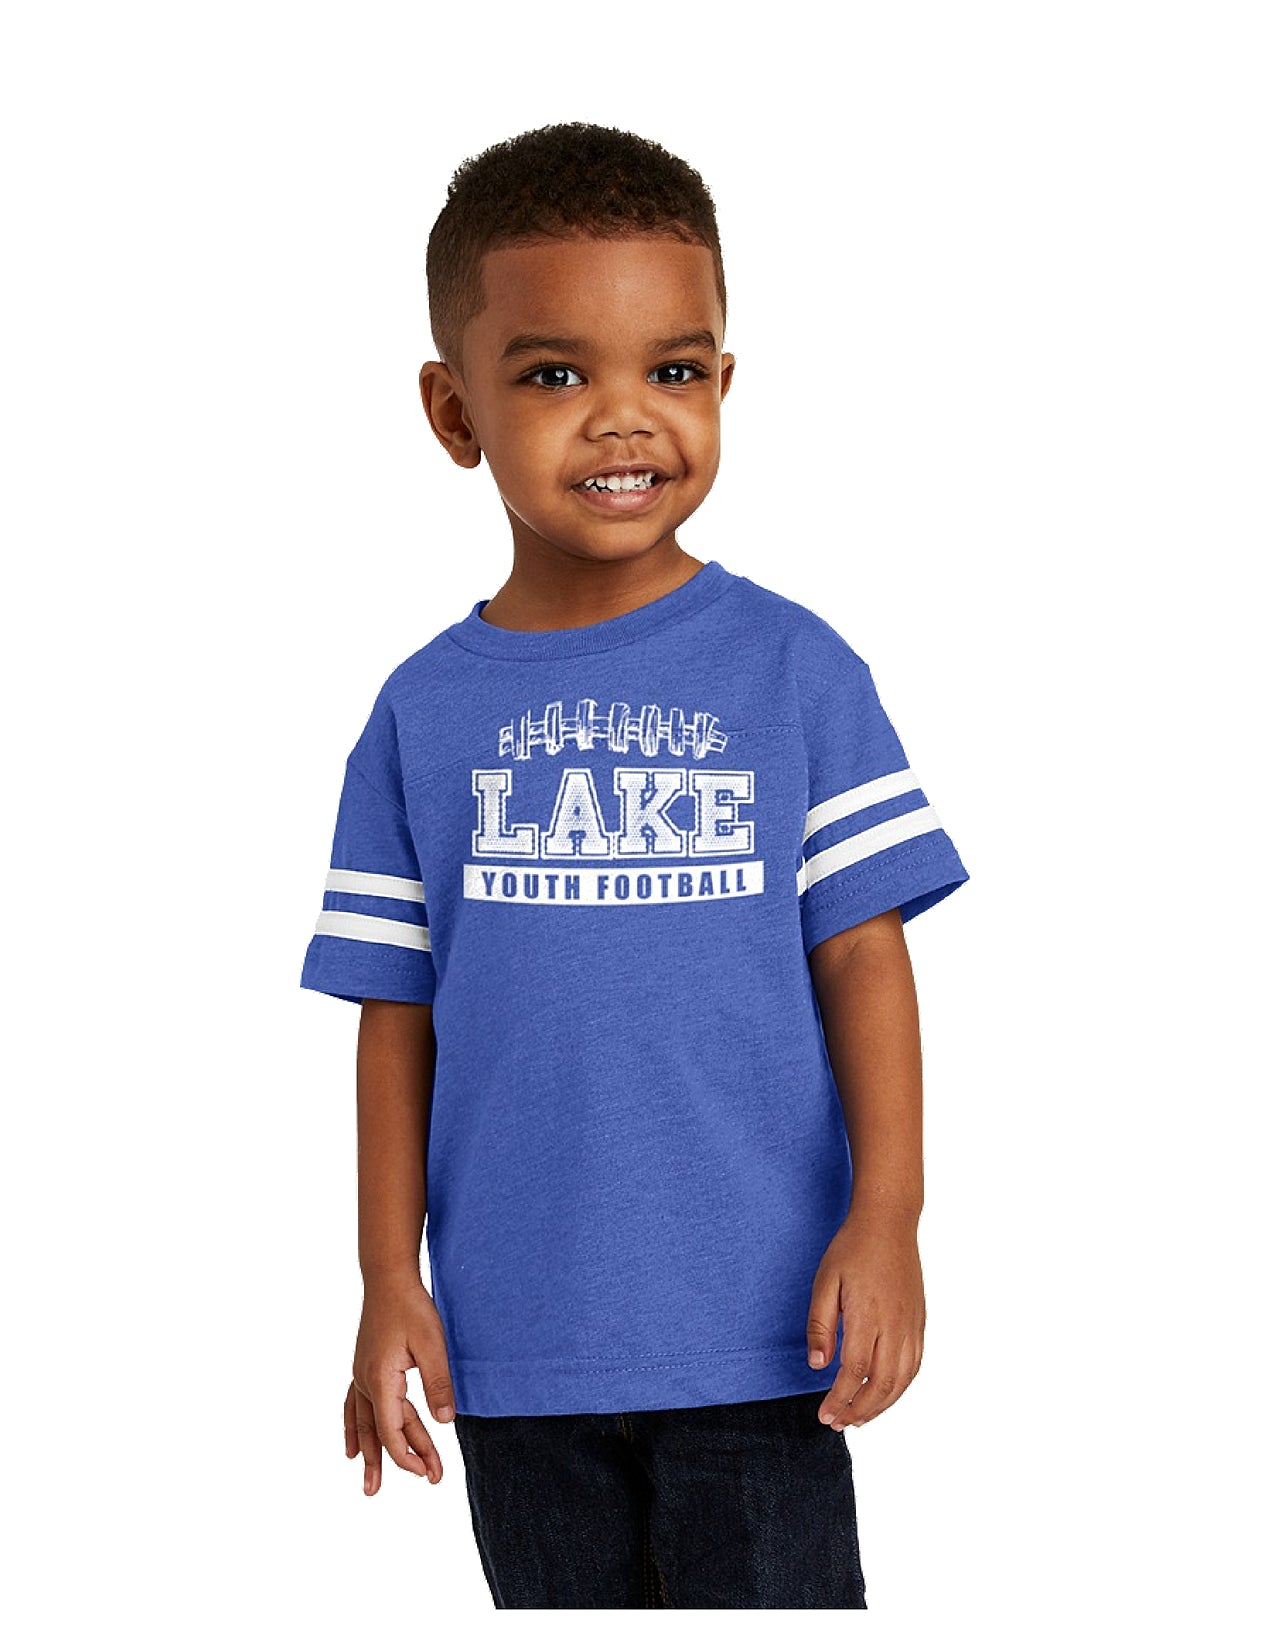 Toddler Football Jersey Tee